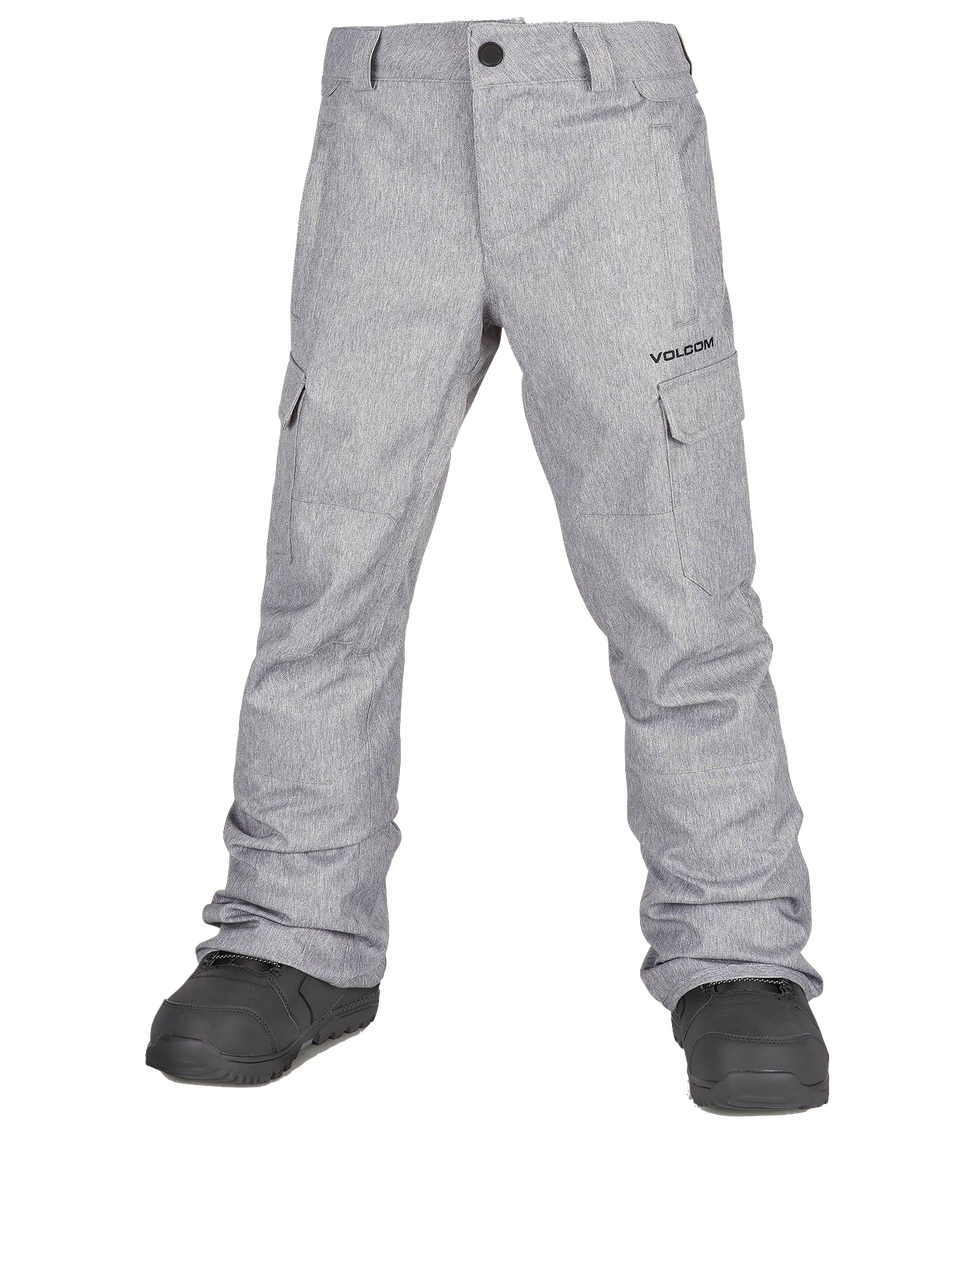 718b9a06fde Volcom Youth Cargo Insulated Pants in Heather Grey - Gear West Ski and Run